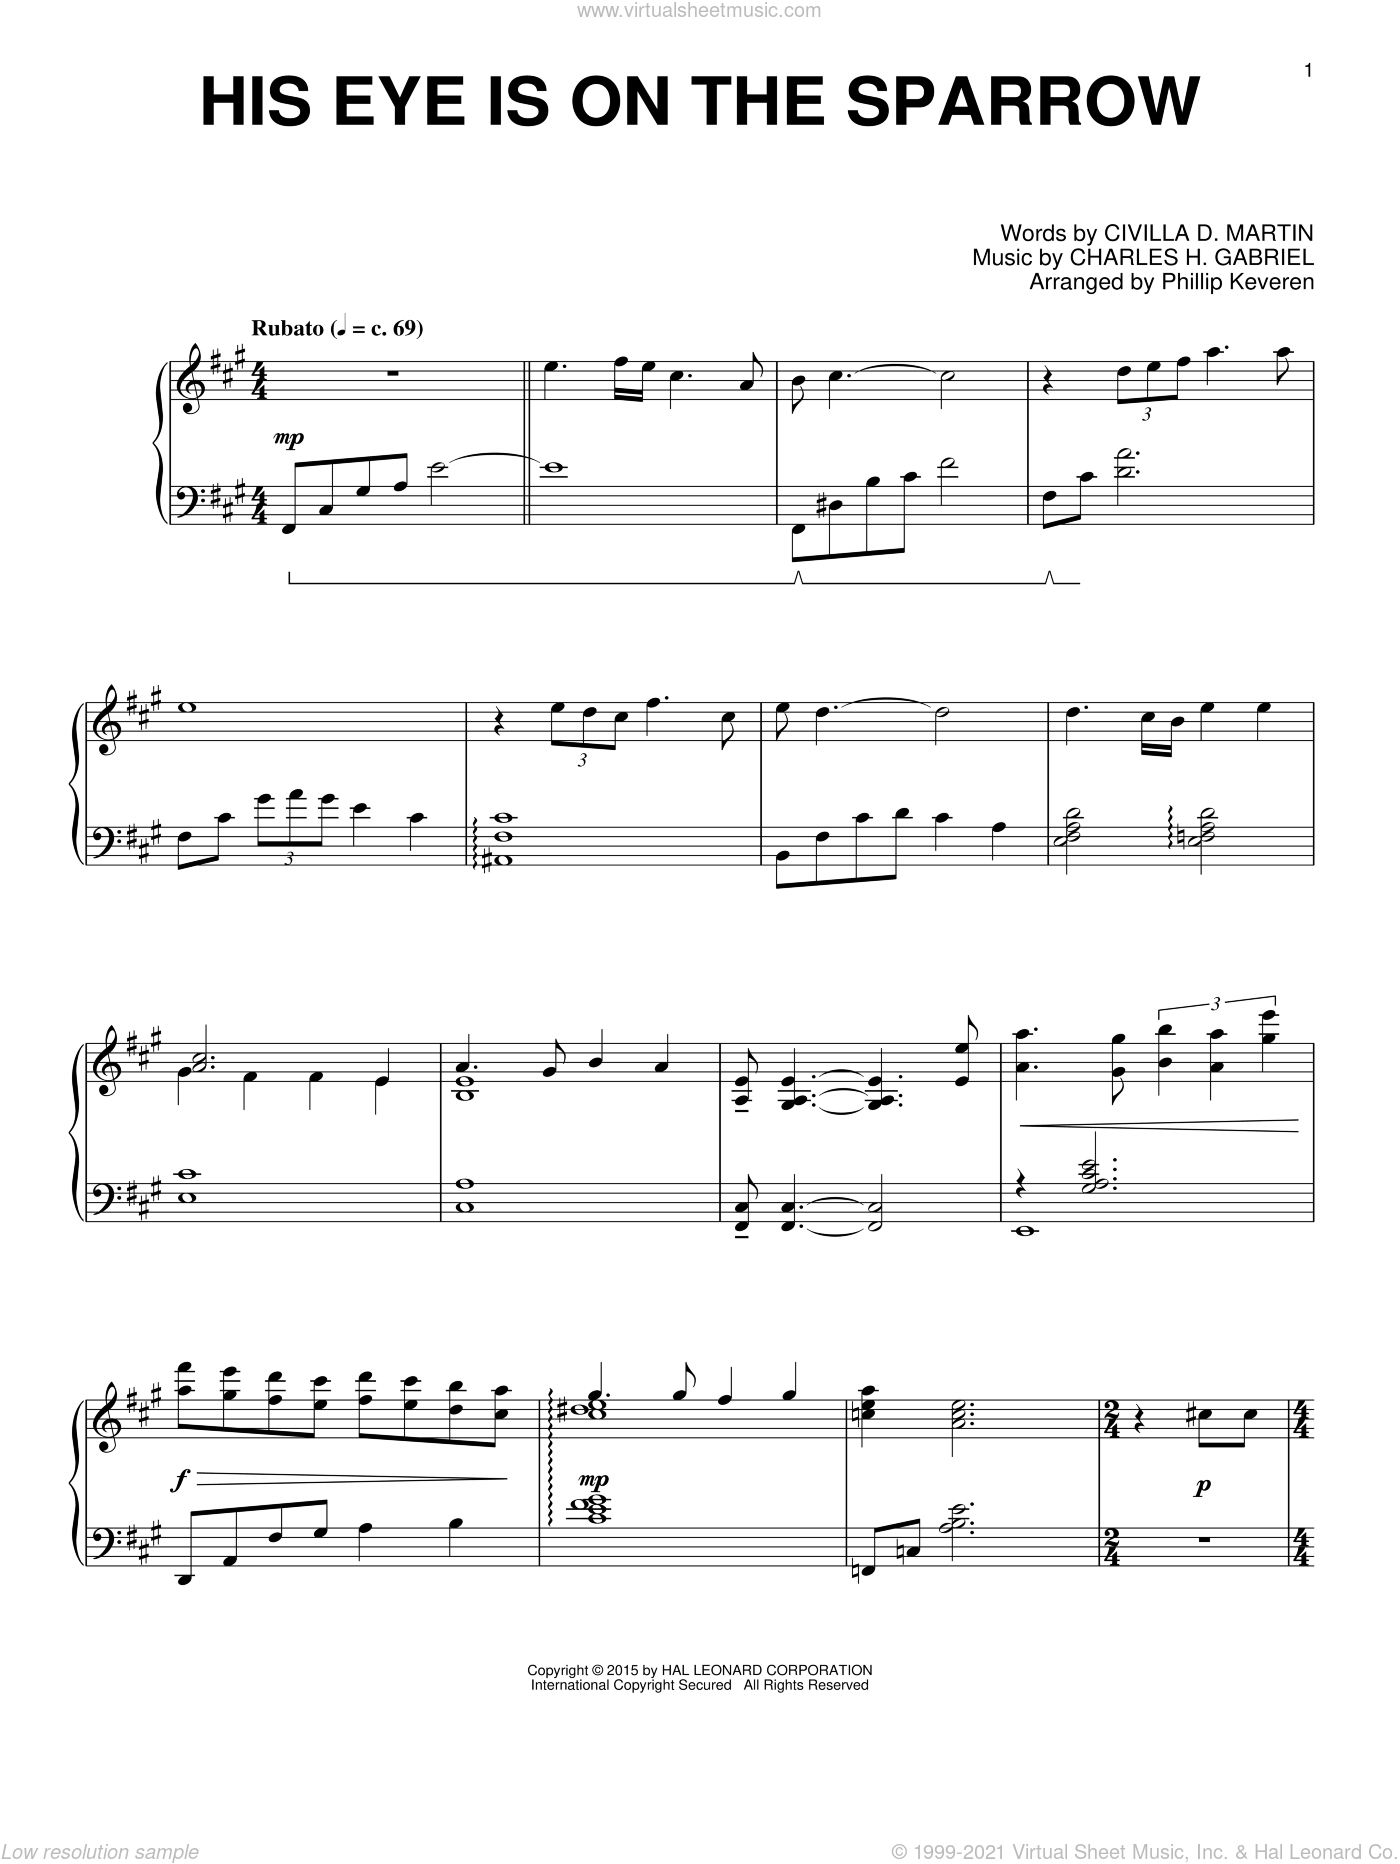 His Eye Is On The Sparrow sheet music for piano solo by Charles H. Gabriel, Phillip Keveren and Civilla D. Martin, intermediate skill level